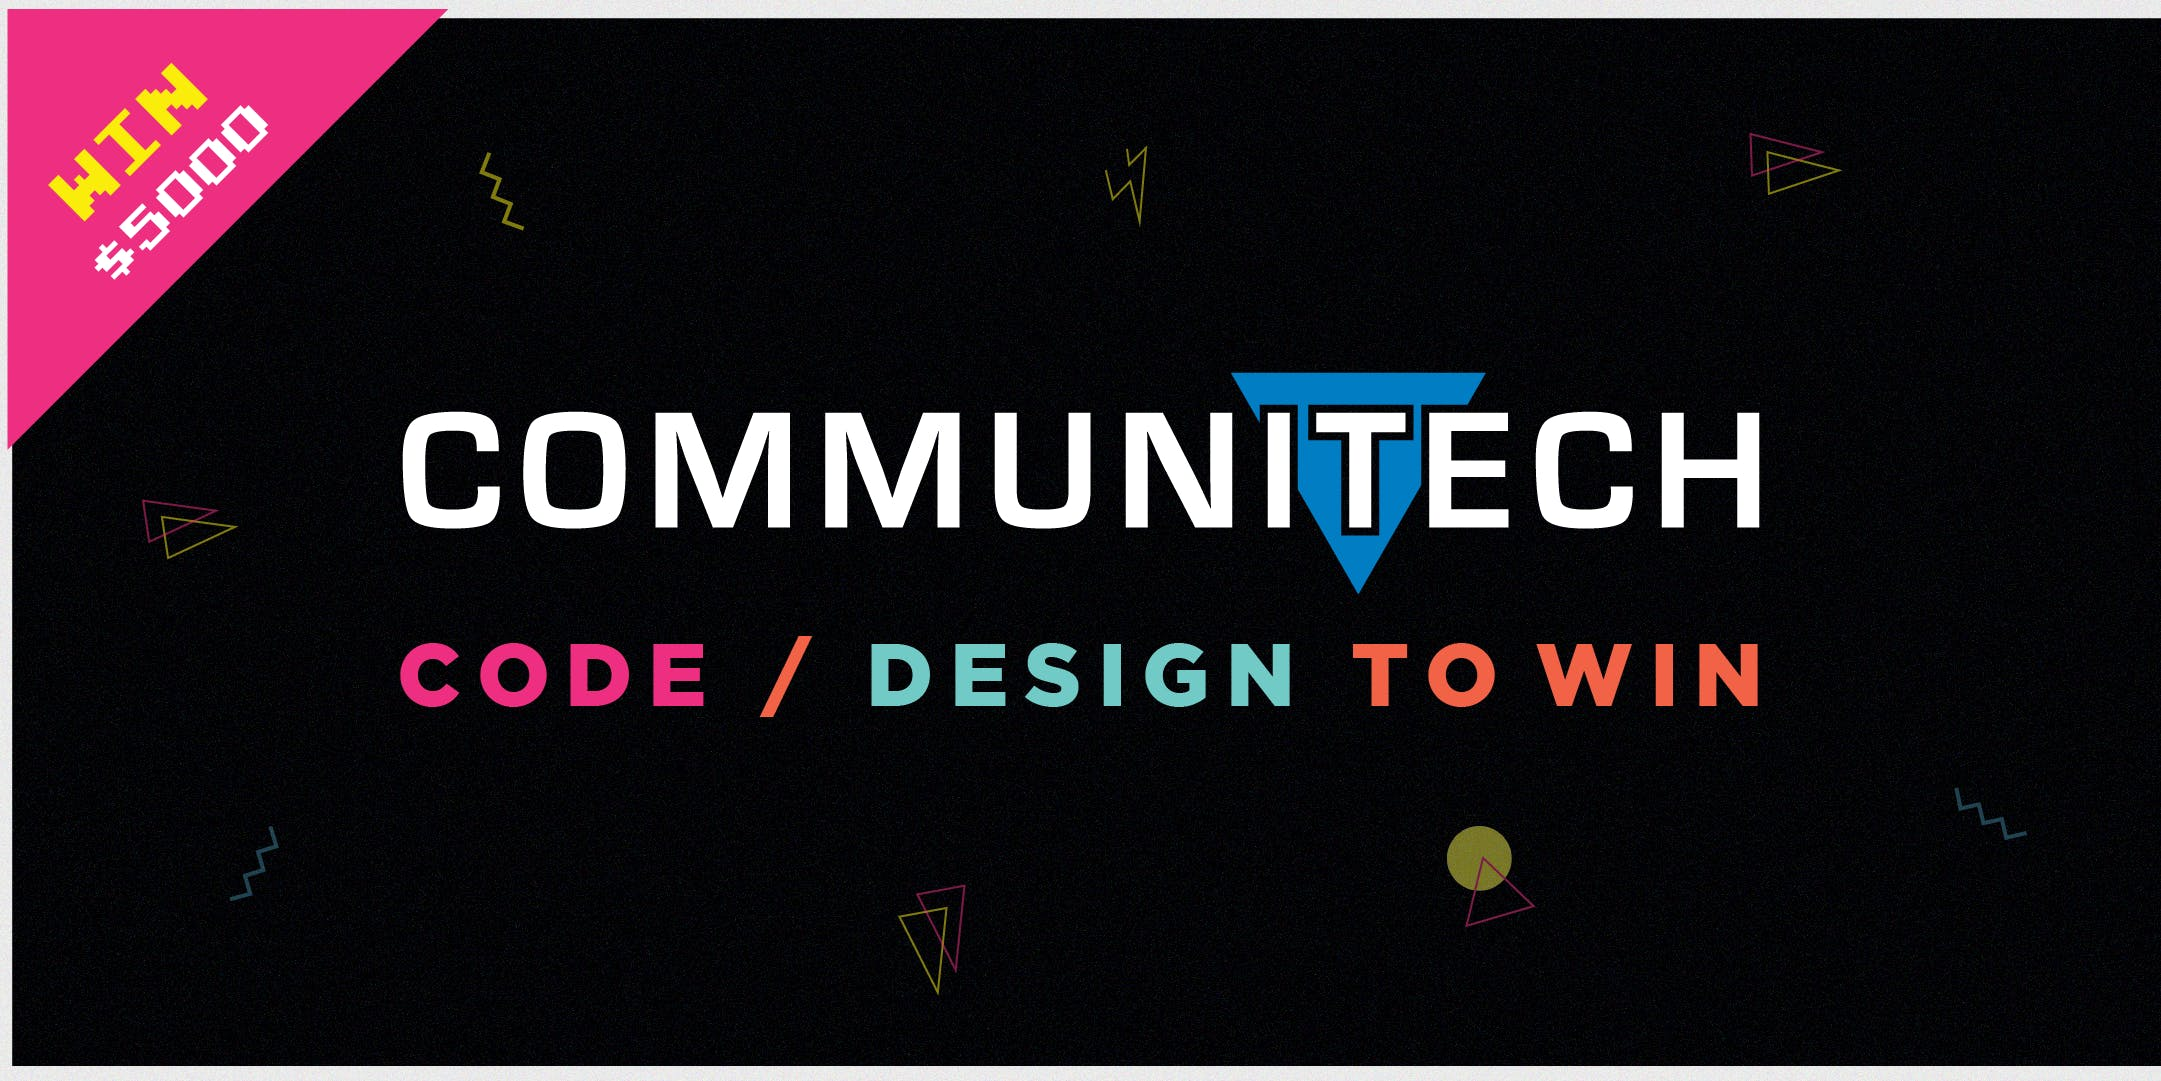 Code/Design to Win - Preliminary Challenge